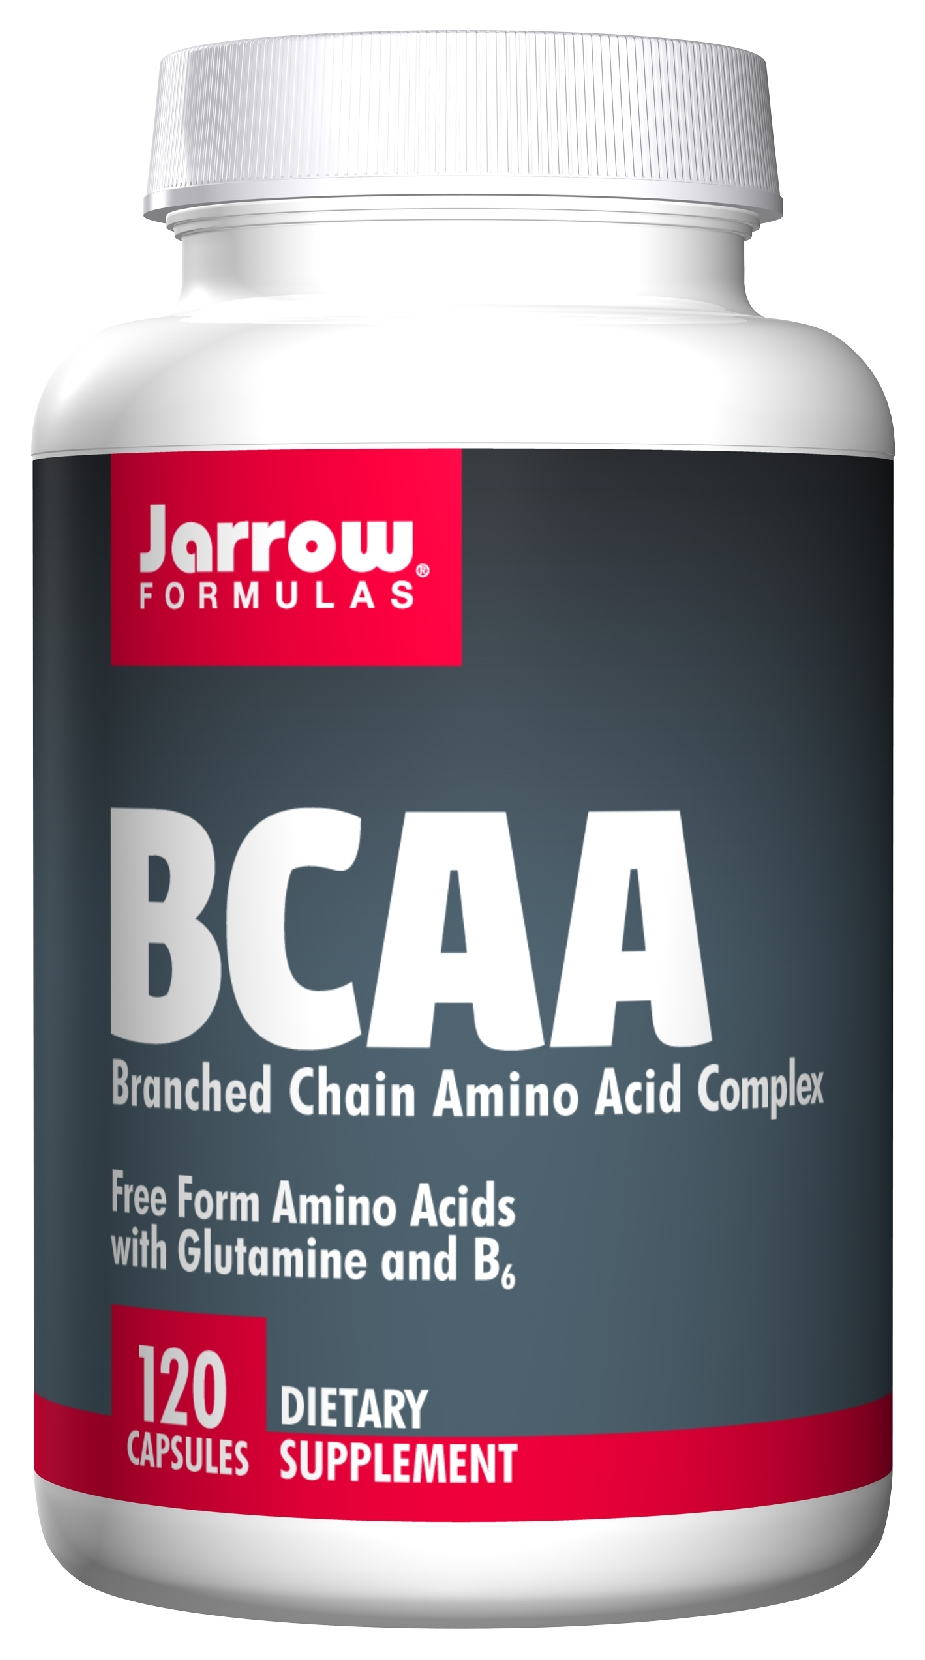 Branched Chain Amino Acid Complex 120 caps by Jarrow Formulas